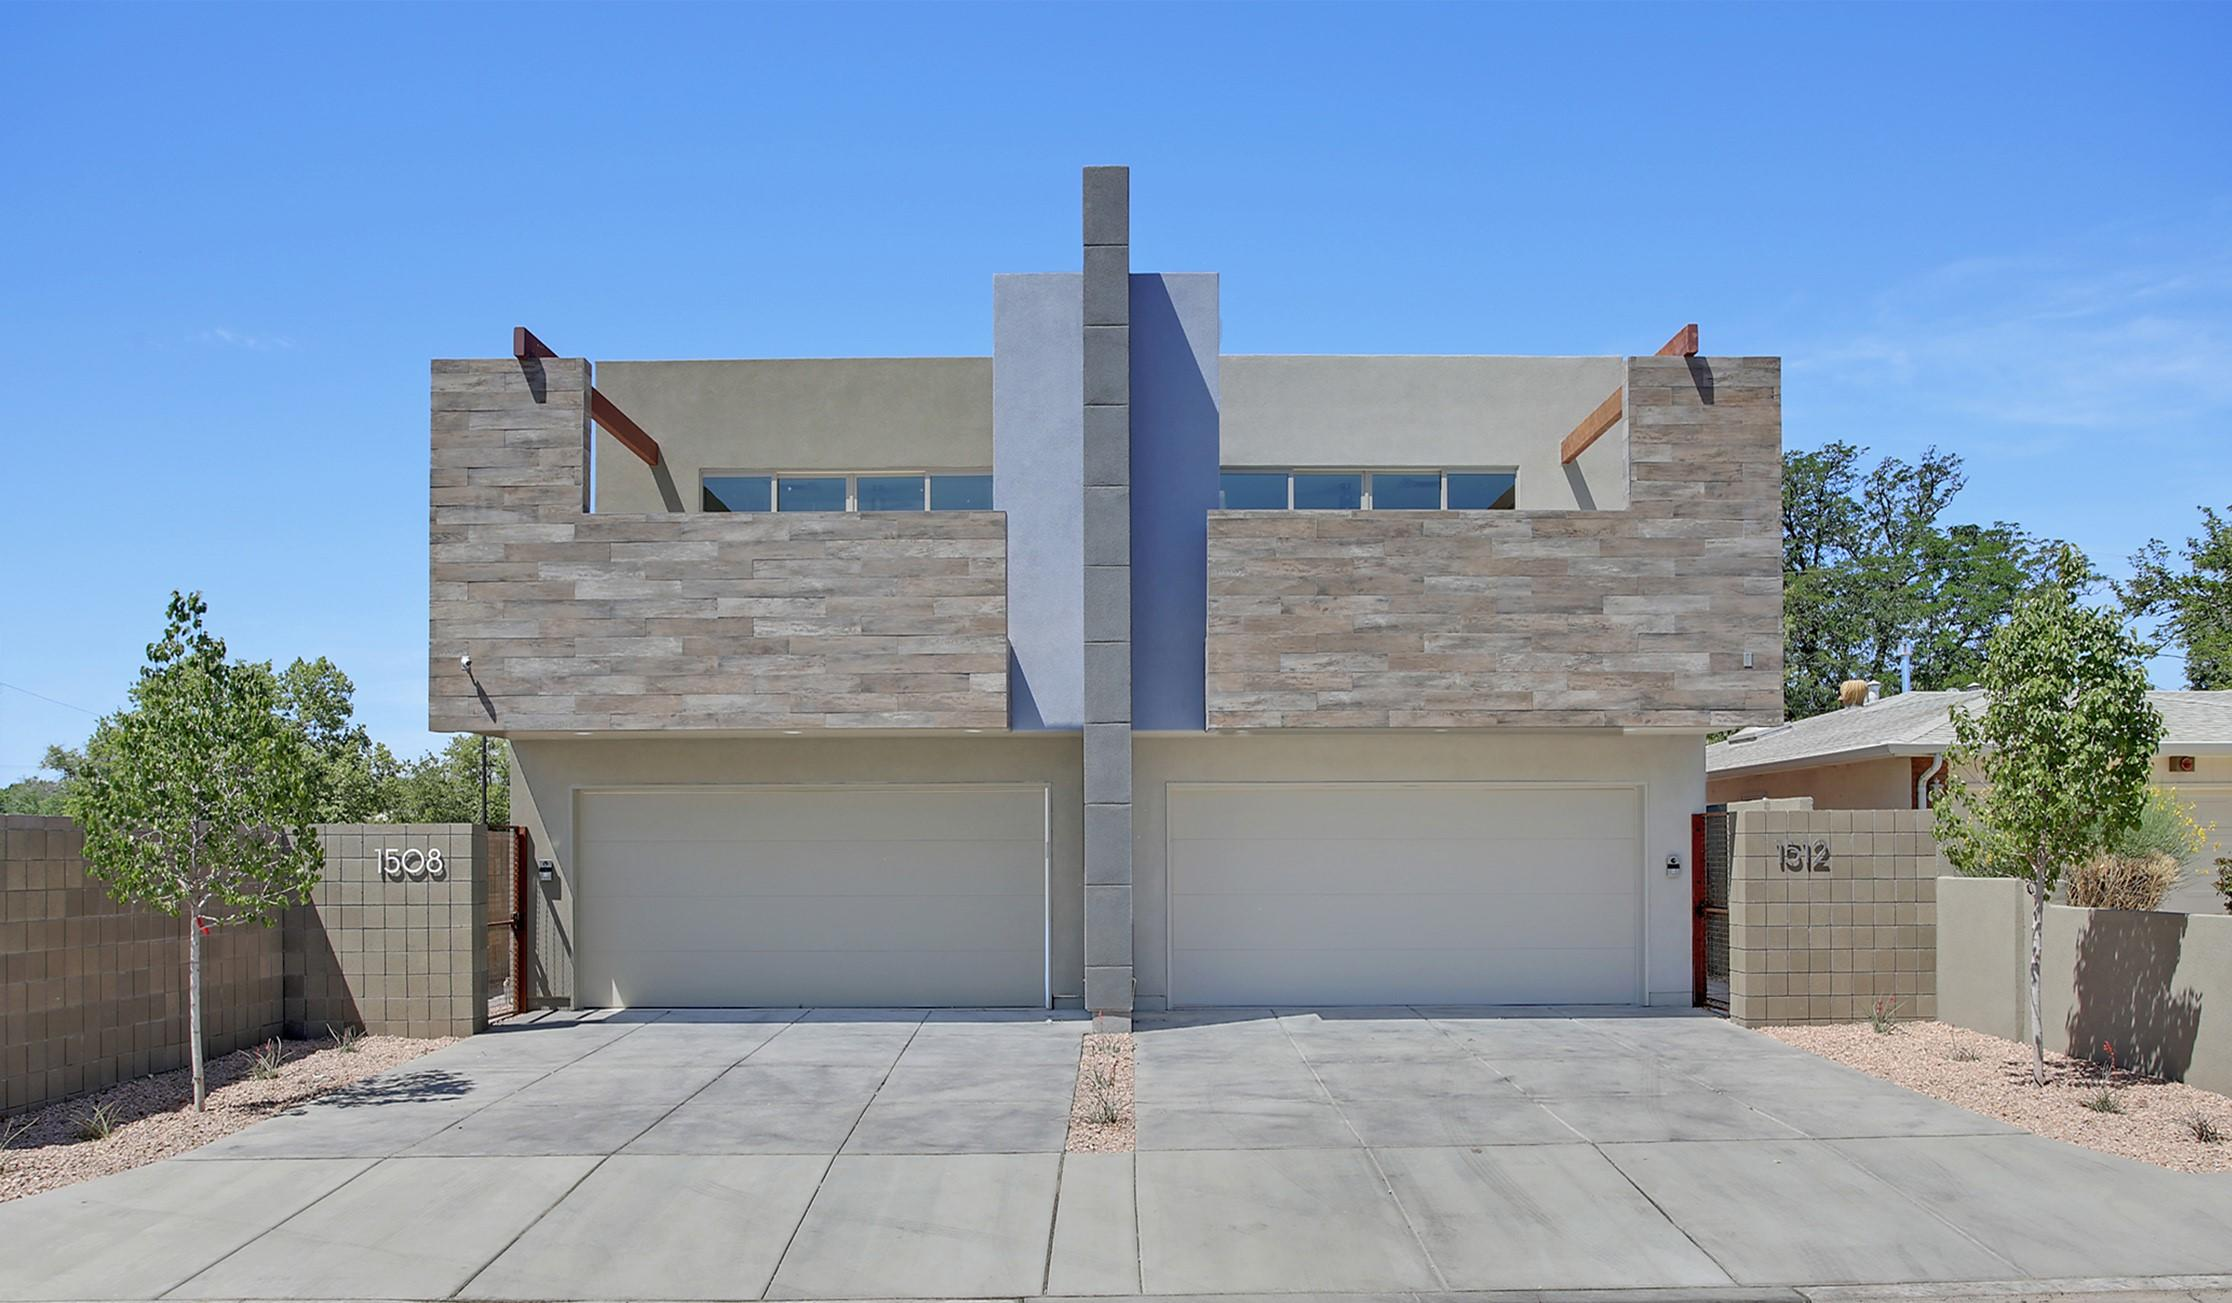 Designed by Architect William Osofsky,  located in the desirable ABQ Country Club, is a Multigenerational State of the Art Solar Townhome. The Future of Housing is Here! Two Dwellings under One Roof. The Garden level unit is 1300 SF with 2 Bedrooms & 2 Bathrooms, a Premium Kitchen, Fireplace, full Laundry, with all rooms opening to Courtyards. The Second Floor unit has 1600 SF with 2 Bedrooms & 2 Bathrooms, Gourmet Kitchen, Fireplace, Full Laundry, a 14'x19' Deck & 2 Balconies. Light filled rooms with 9 ft. ceilings, 8 ft. glass doors connect seamlessly to outdoors. The all electric Solar Systems saves money combined with the Energy Efficient LG Split System HVAC in each room for customized comfort, heat one room, cool another.  Perfect short term rental, live/work space or 1 large home.